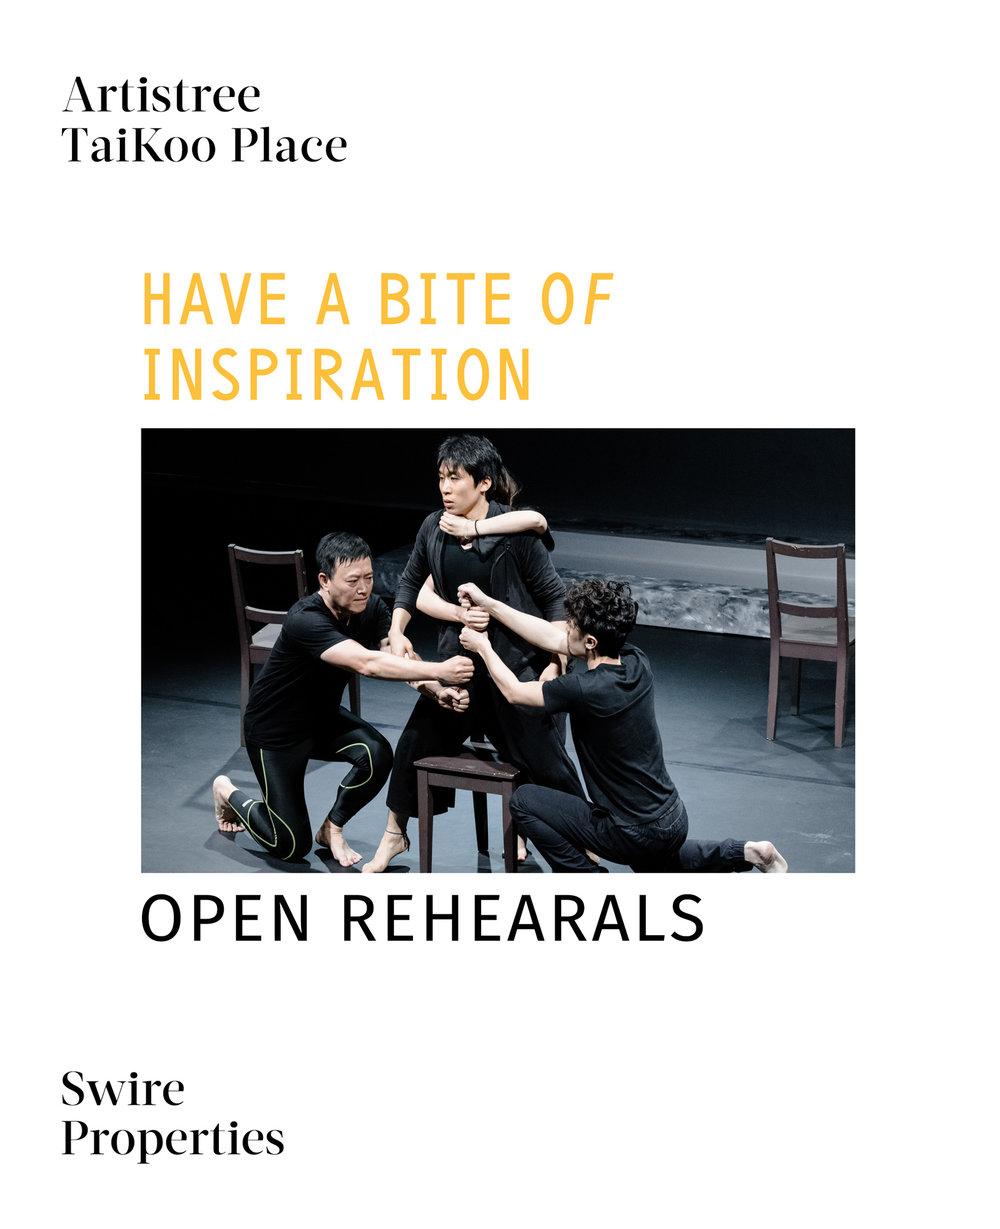 Emoto / Open Rehearsals Series  ArtistreeHK / Open Rehearsals Series - Have a Bite of Inspiration Swire Properties Art